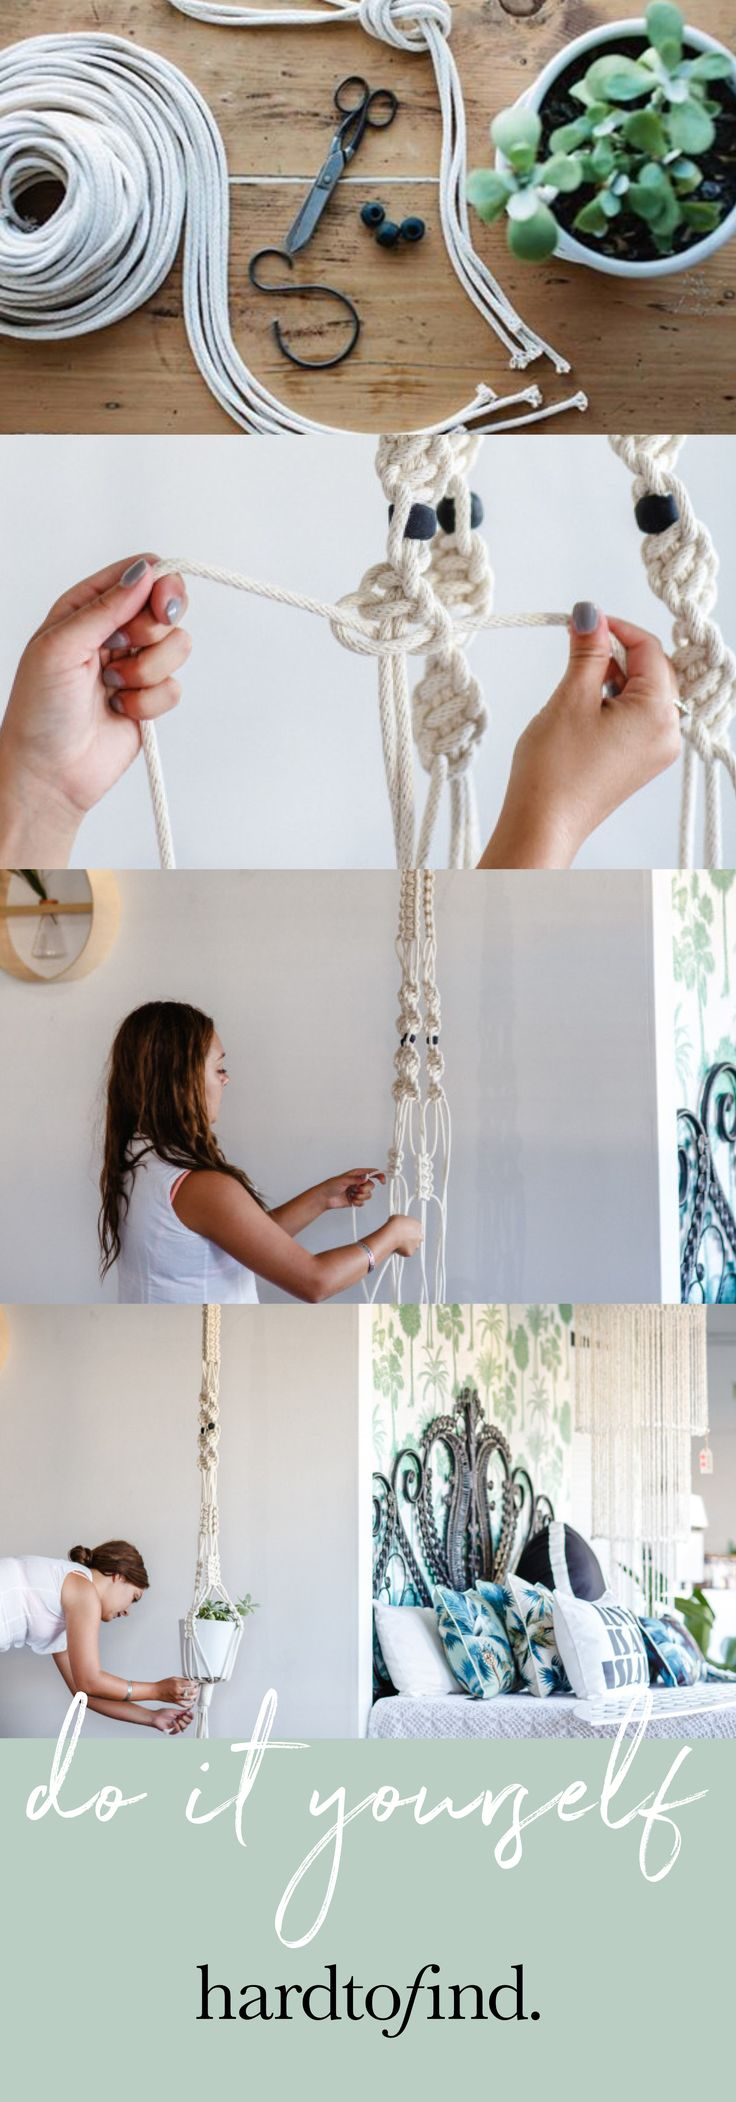 Get crafty with a DIY macrame plant hanger. This kit includes a step-by-step instruction booklet, 40 meters of Australian cotton rope, a handmade melted metal hook and clay beads to make your macrame plant hanger.